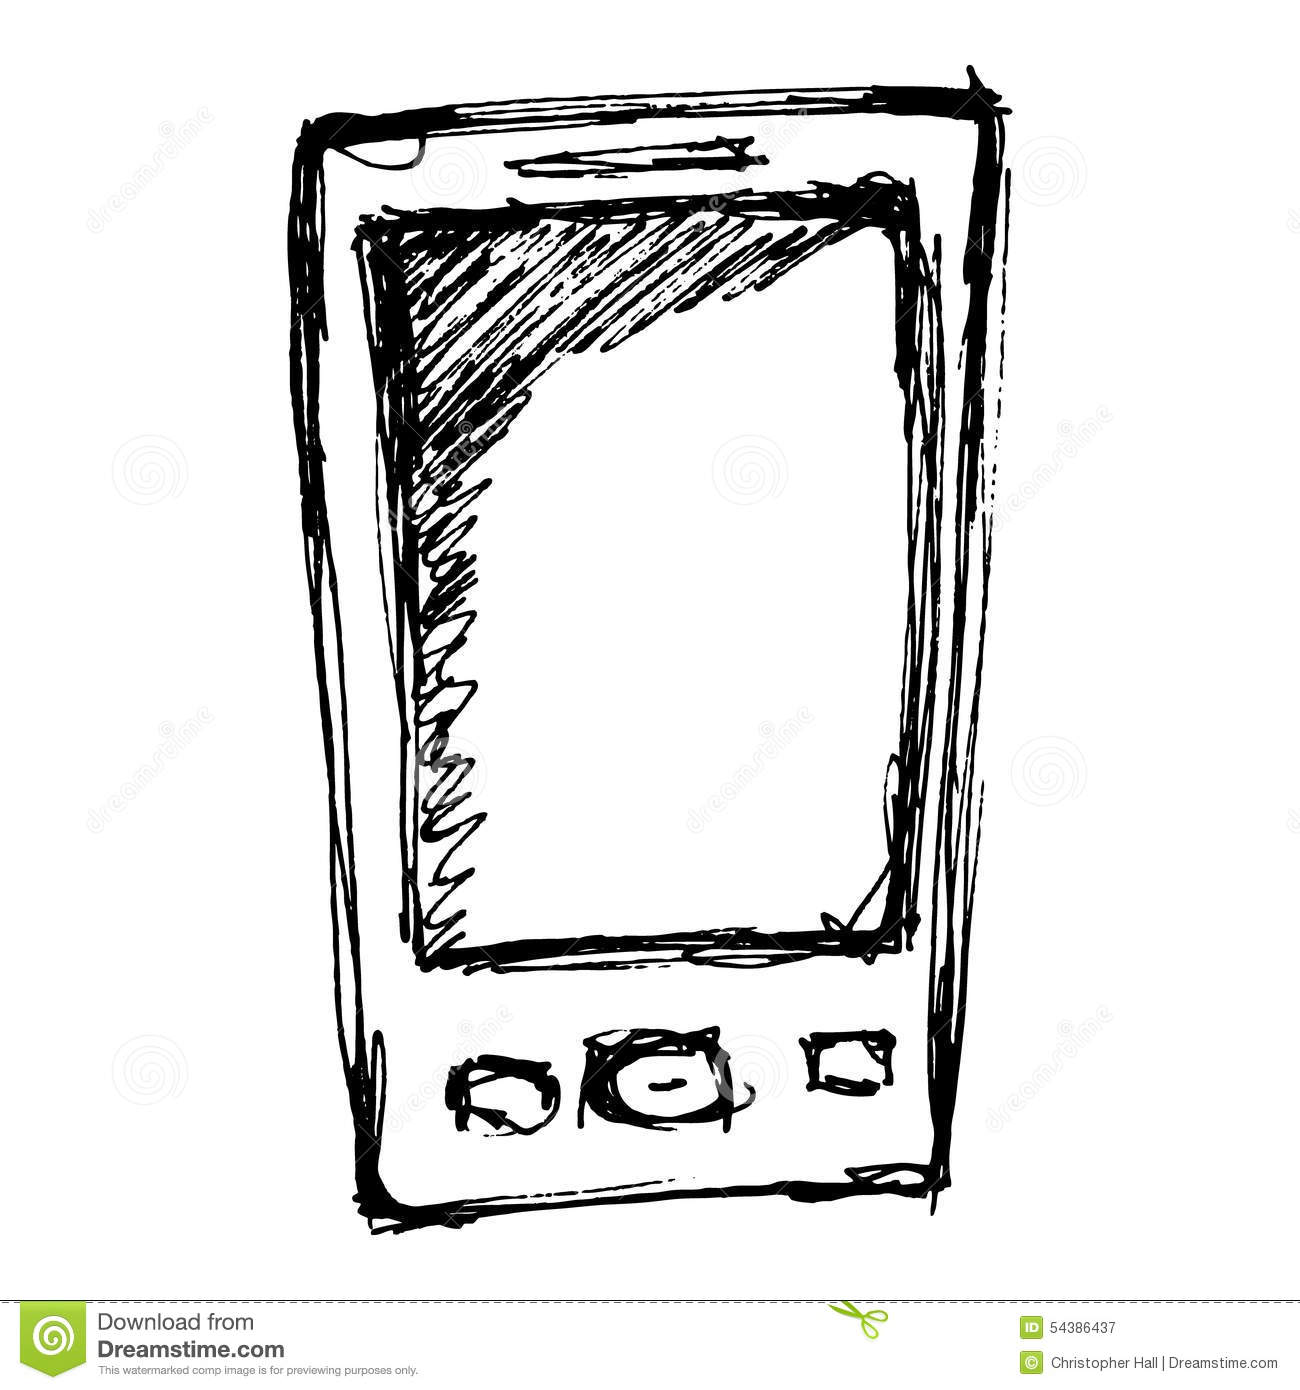 Rough Sketch Of A Mobile Phone Stock Vector